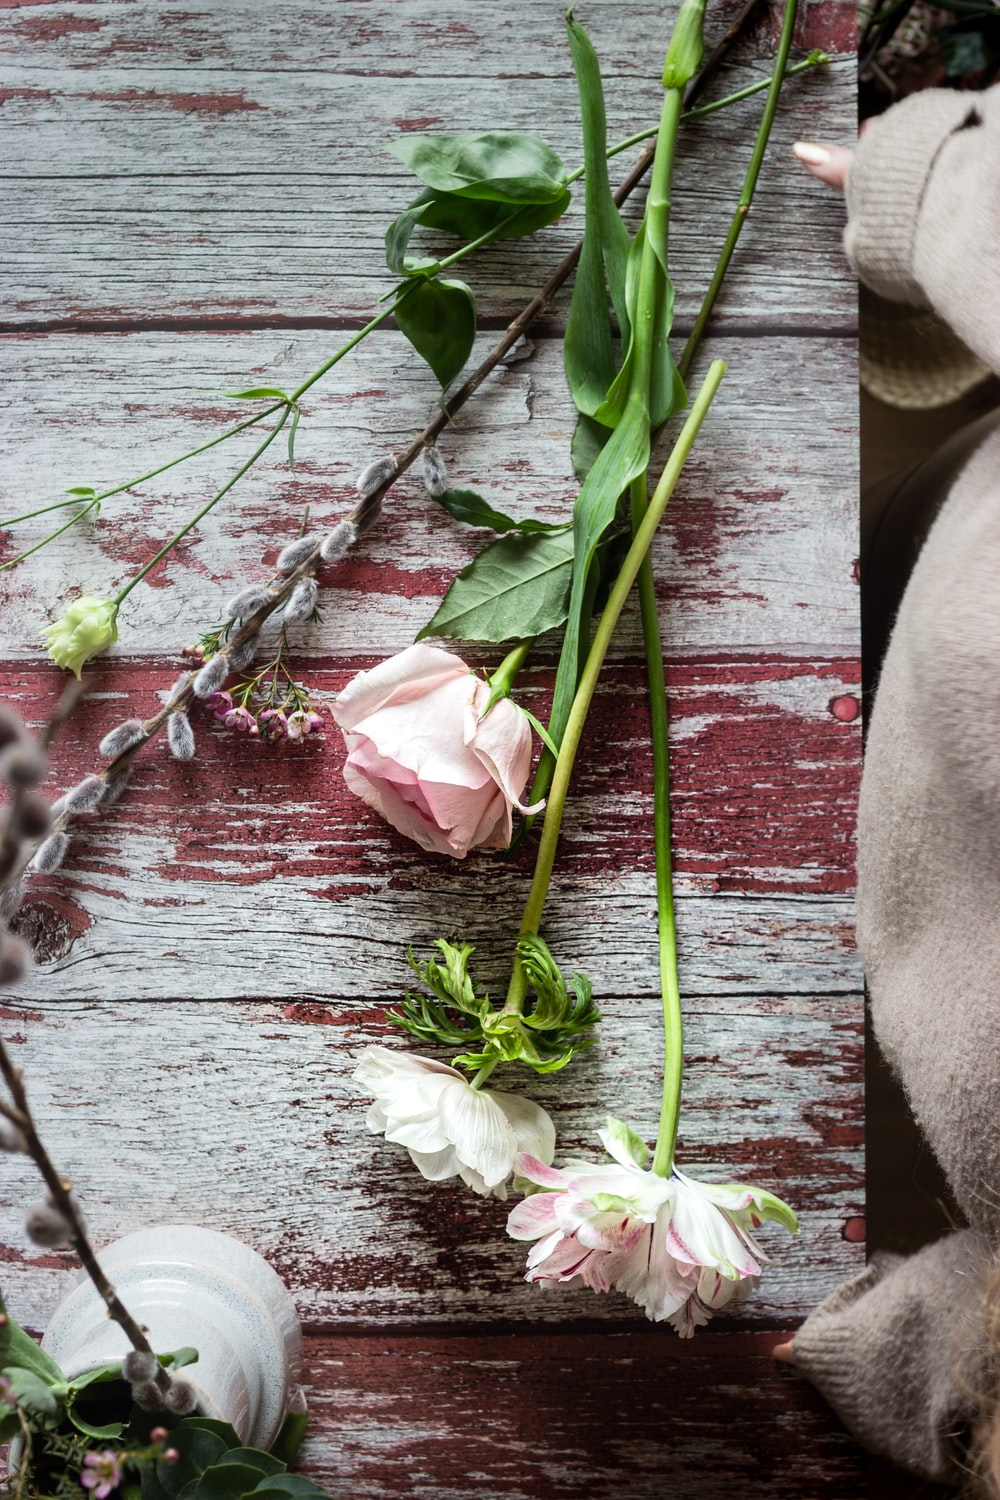 white and pink flowers on brown wooden surface